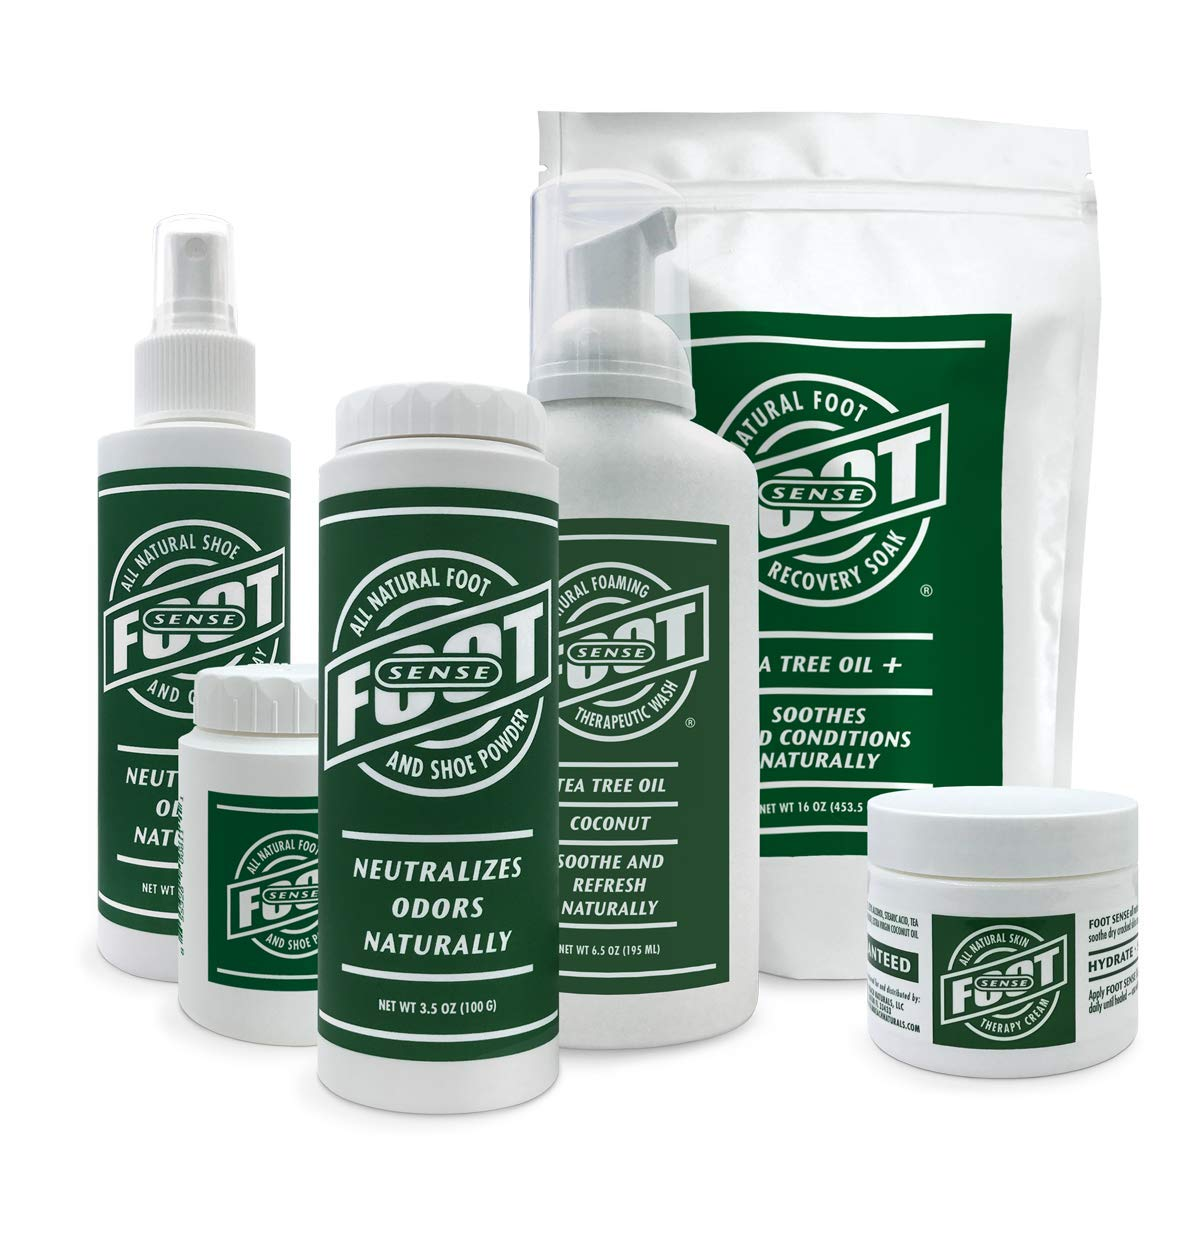 Natural Shoe Deodorizer Powder & Foot Odor Eliminator - for Smelly Shoes, Body, Stinky Feet. Use for Jock Itch and Athletes Foot.